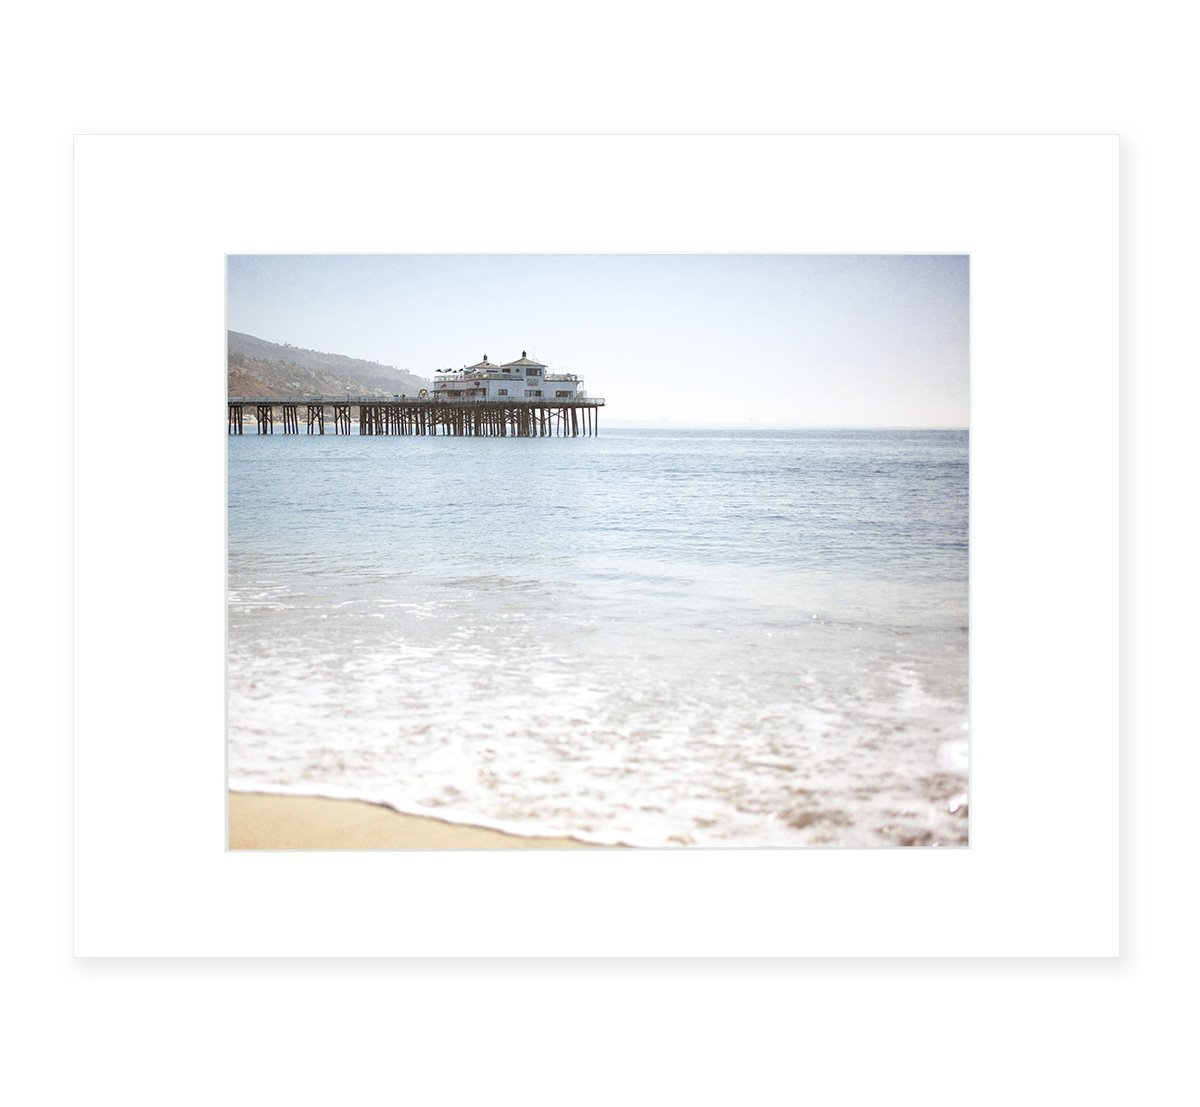 Malibu Beach Wall Art, California Coastal Landscape Decor, 8x10 Matted Photographic Print (fits 11x14 frame), 'Malibu Pier'